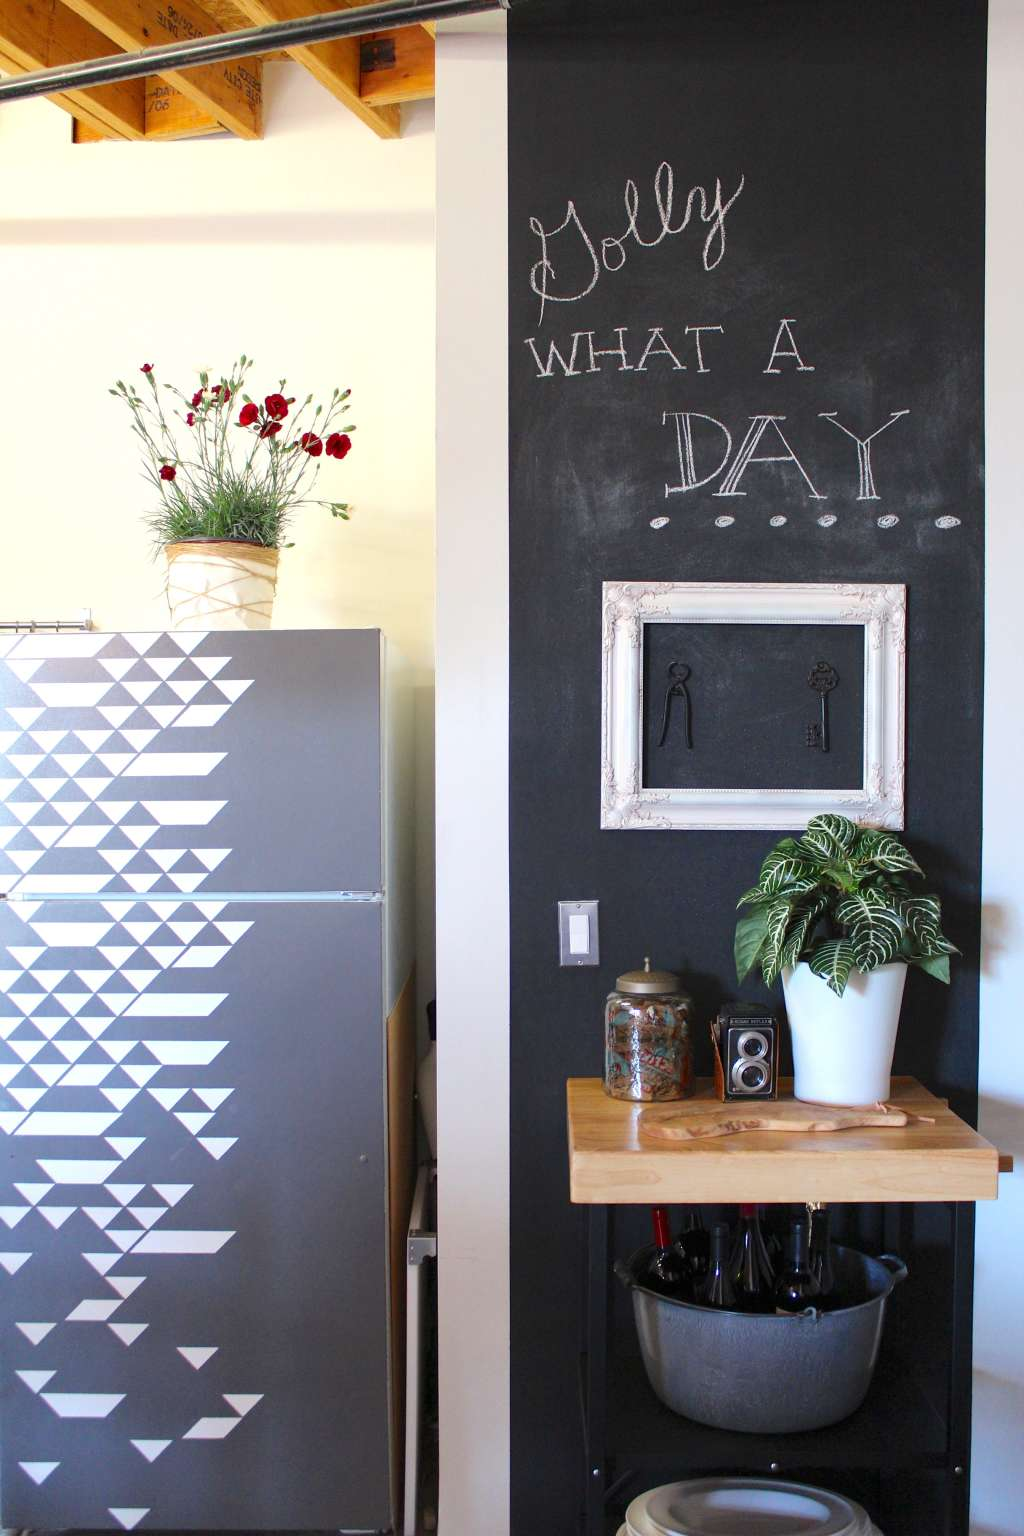 Explore Possibilities! Advice on Taking Risks With Your Home's Design